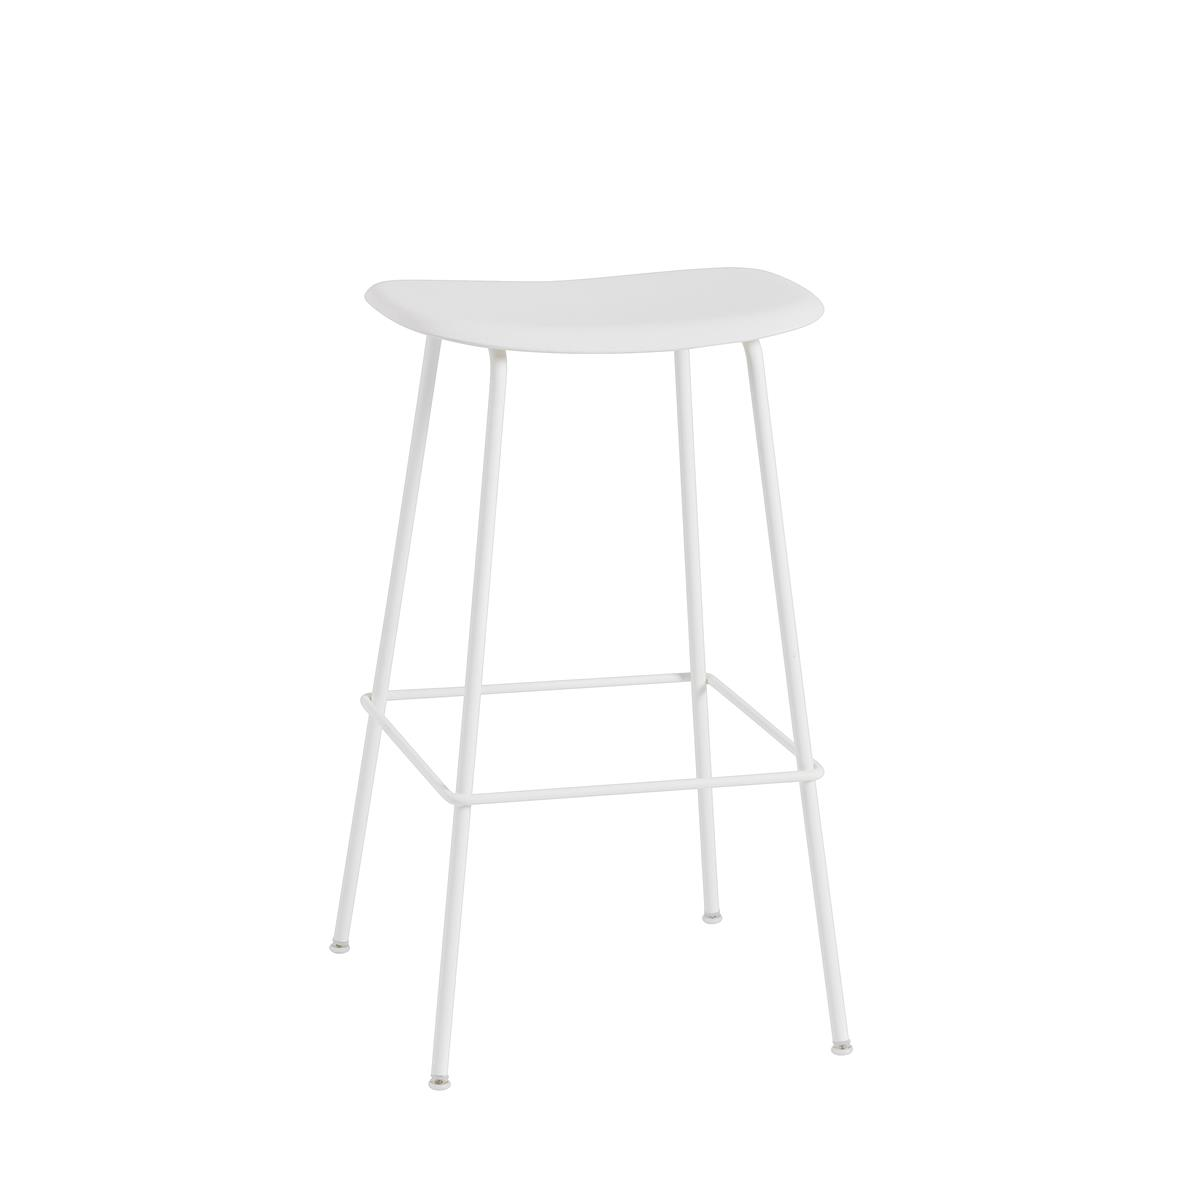 Fiber Bar Stool / Tube Base H75 - Natural White